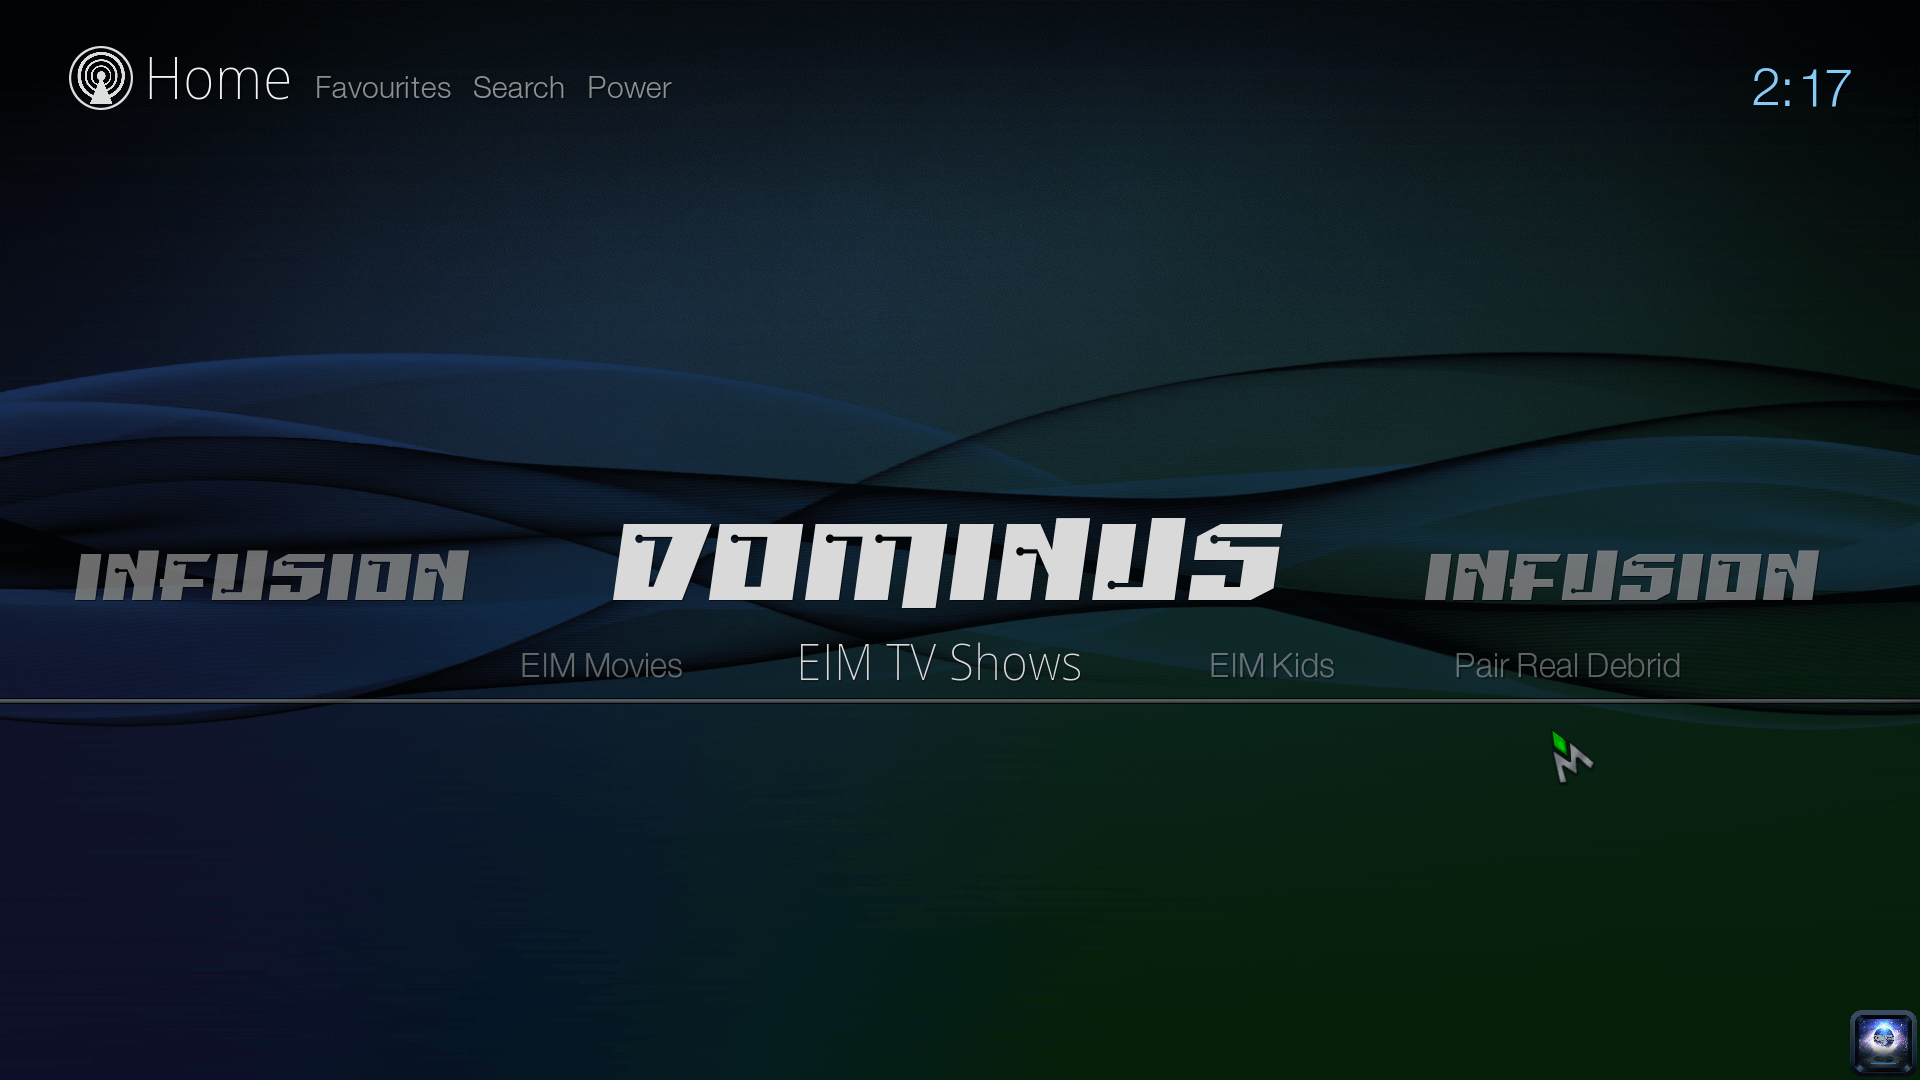 How to Install Dominus Build on Kodi 17.6 Krypton